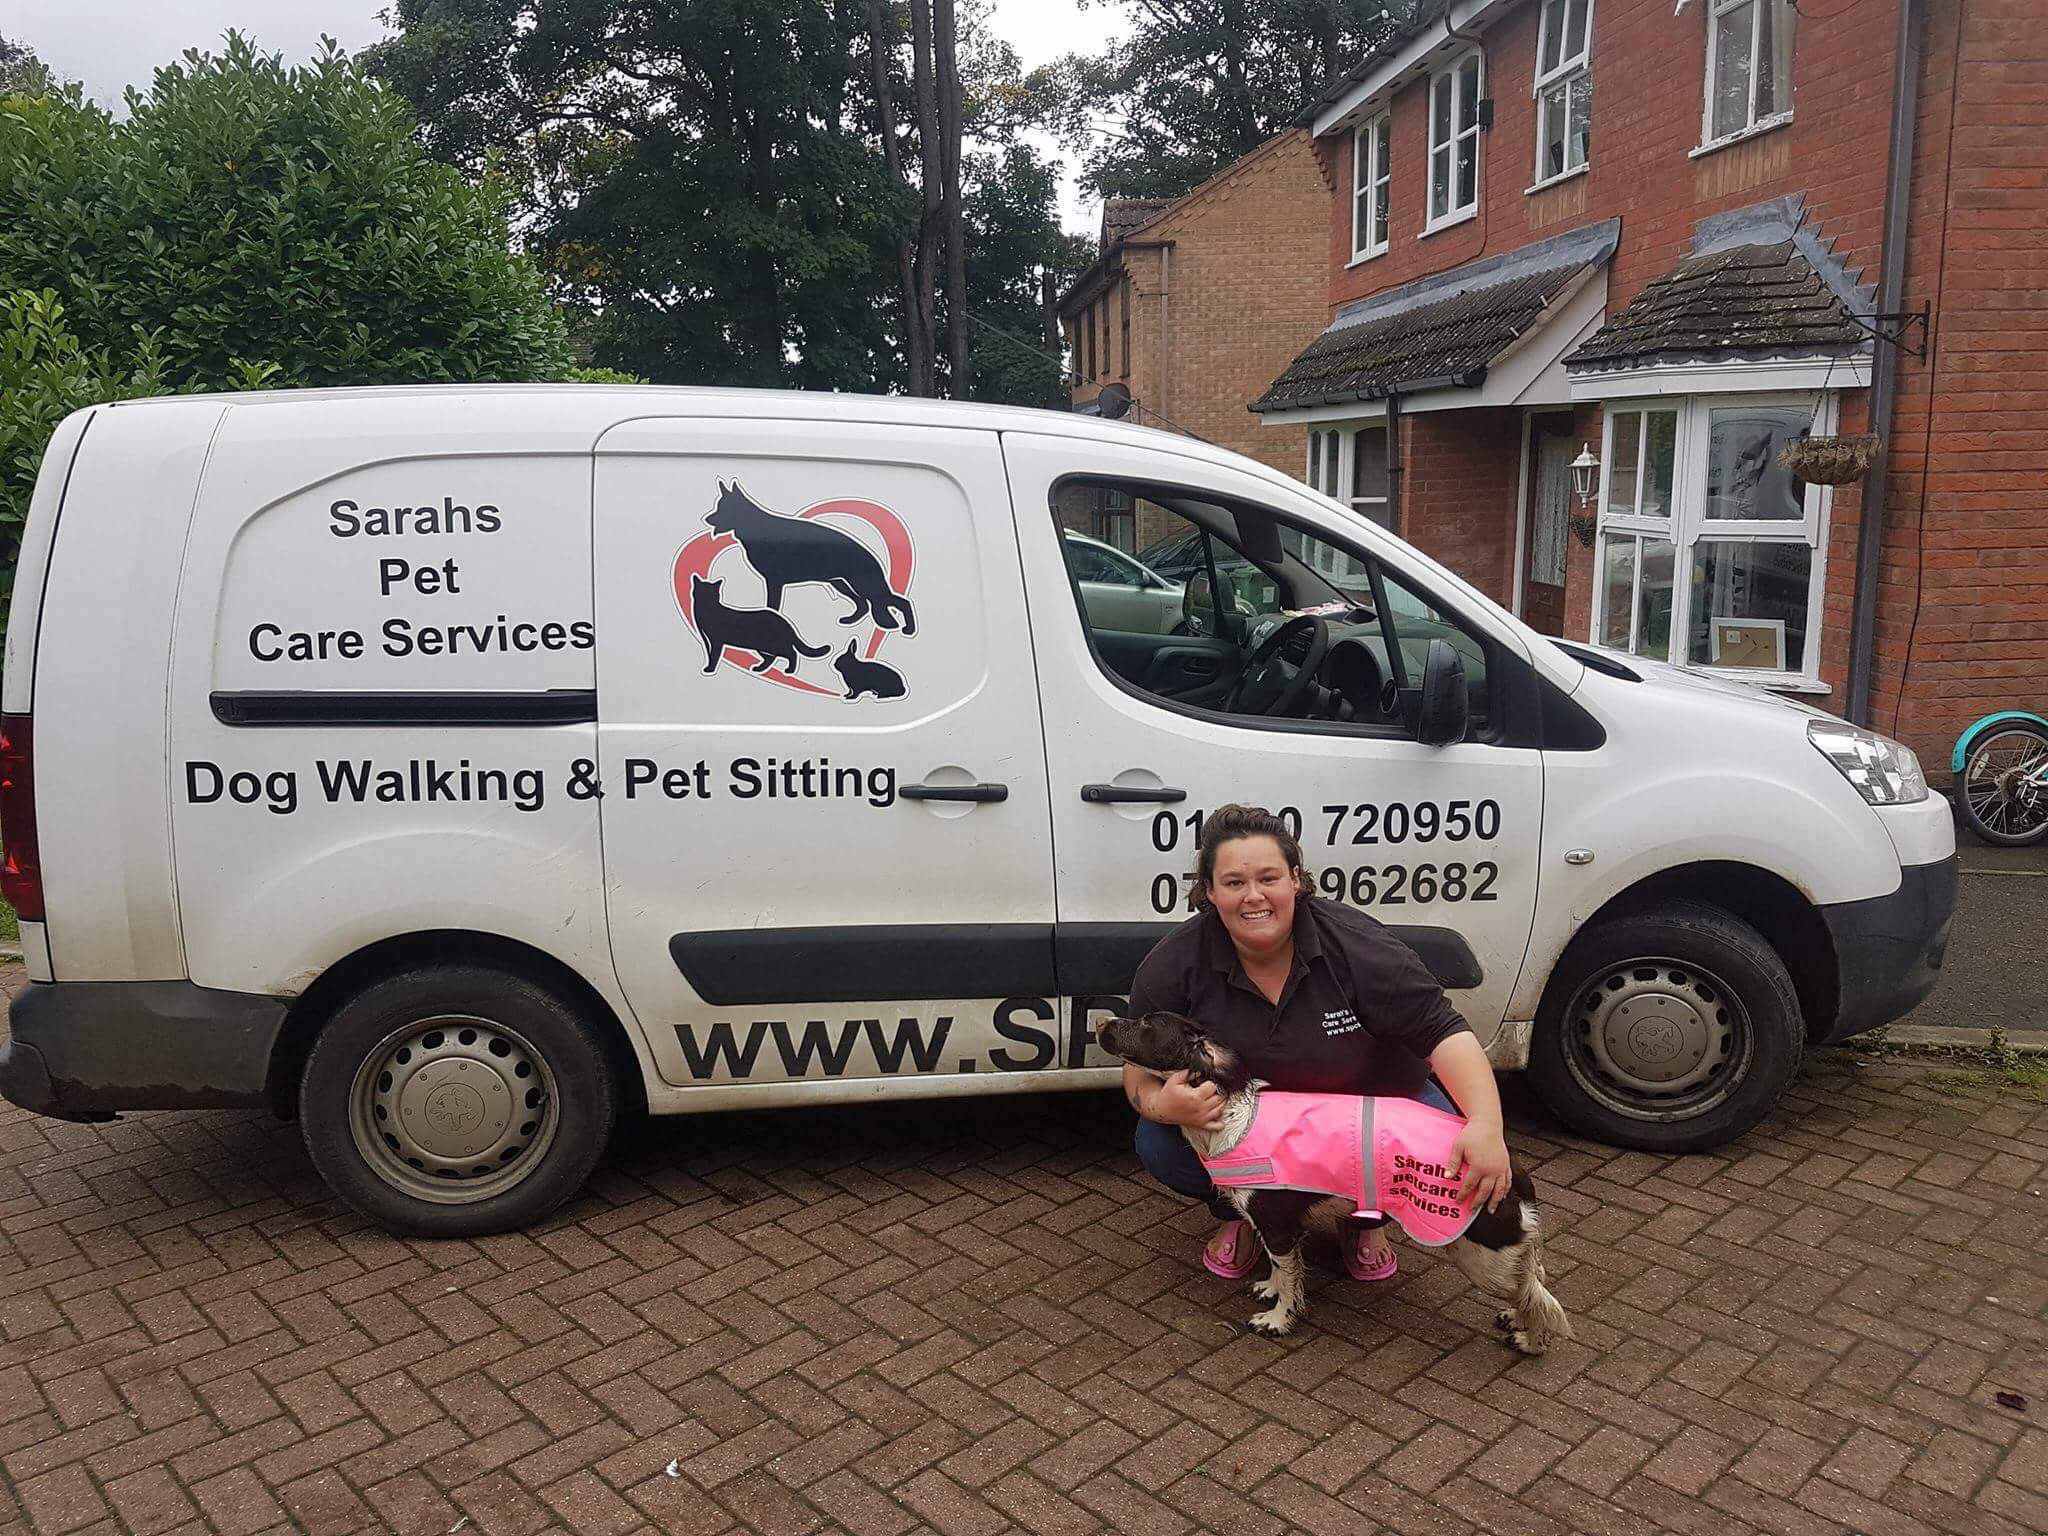 Sarah Husband - Sarahs Pet Care Services